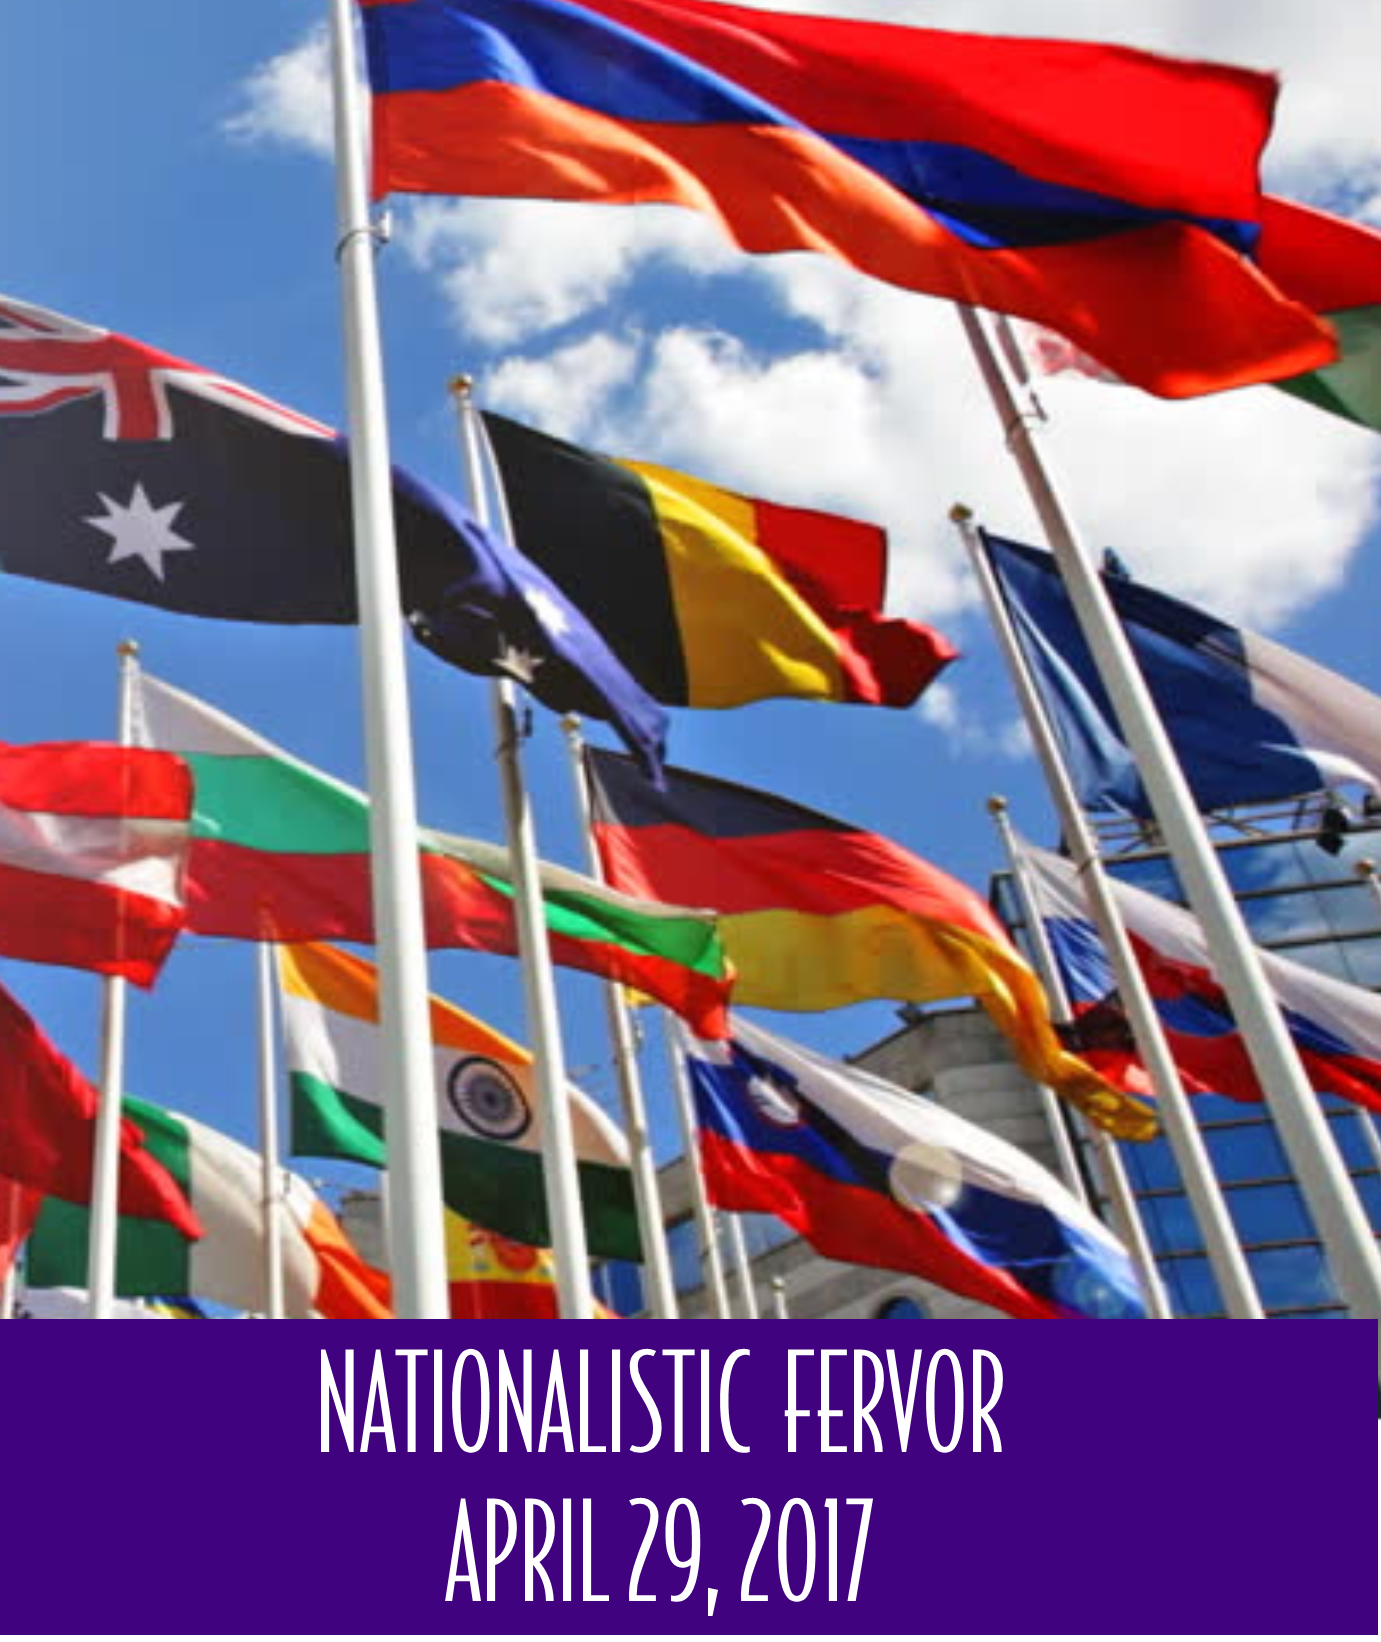 Nationalistic Fervor